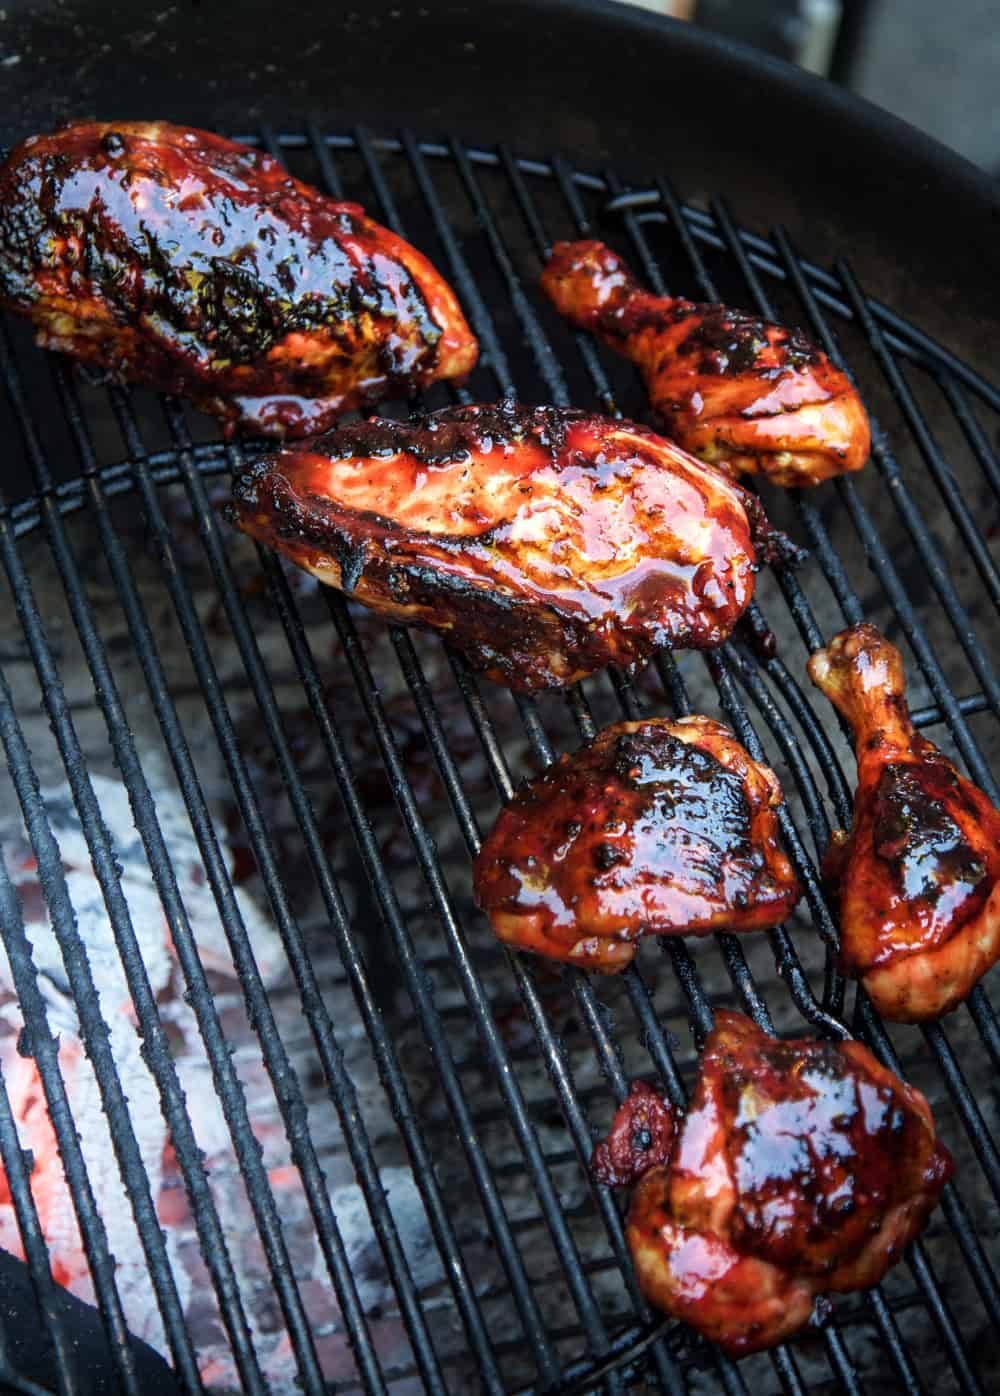 Grilled Chicken with Blackberry BBQ Sauce